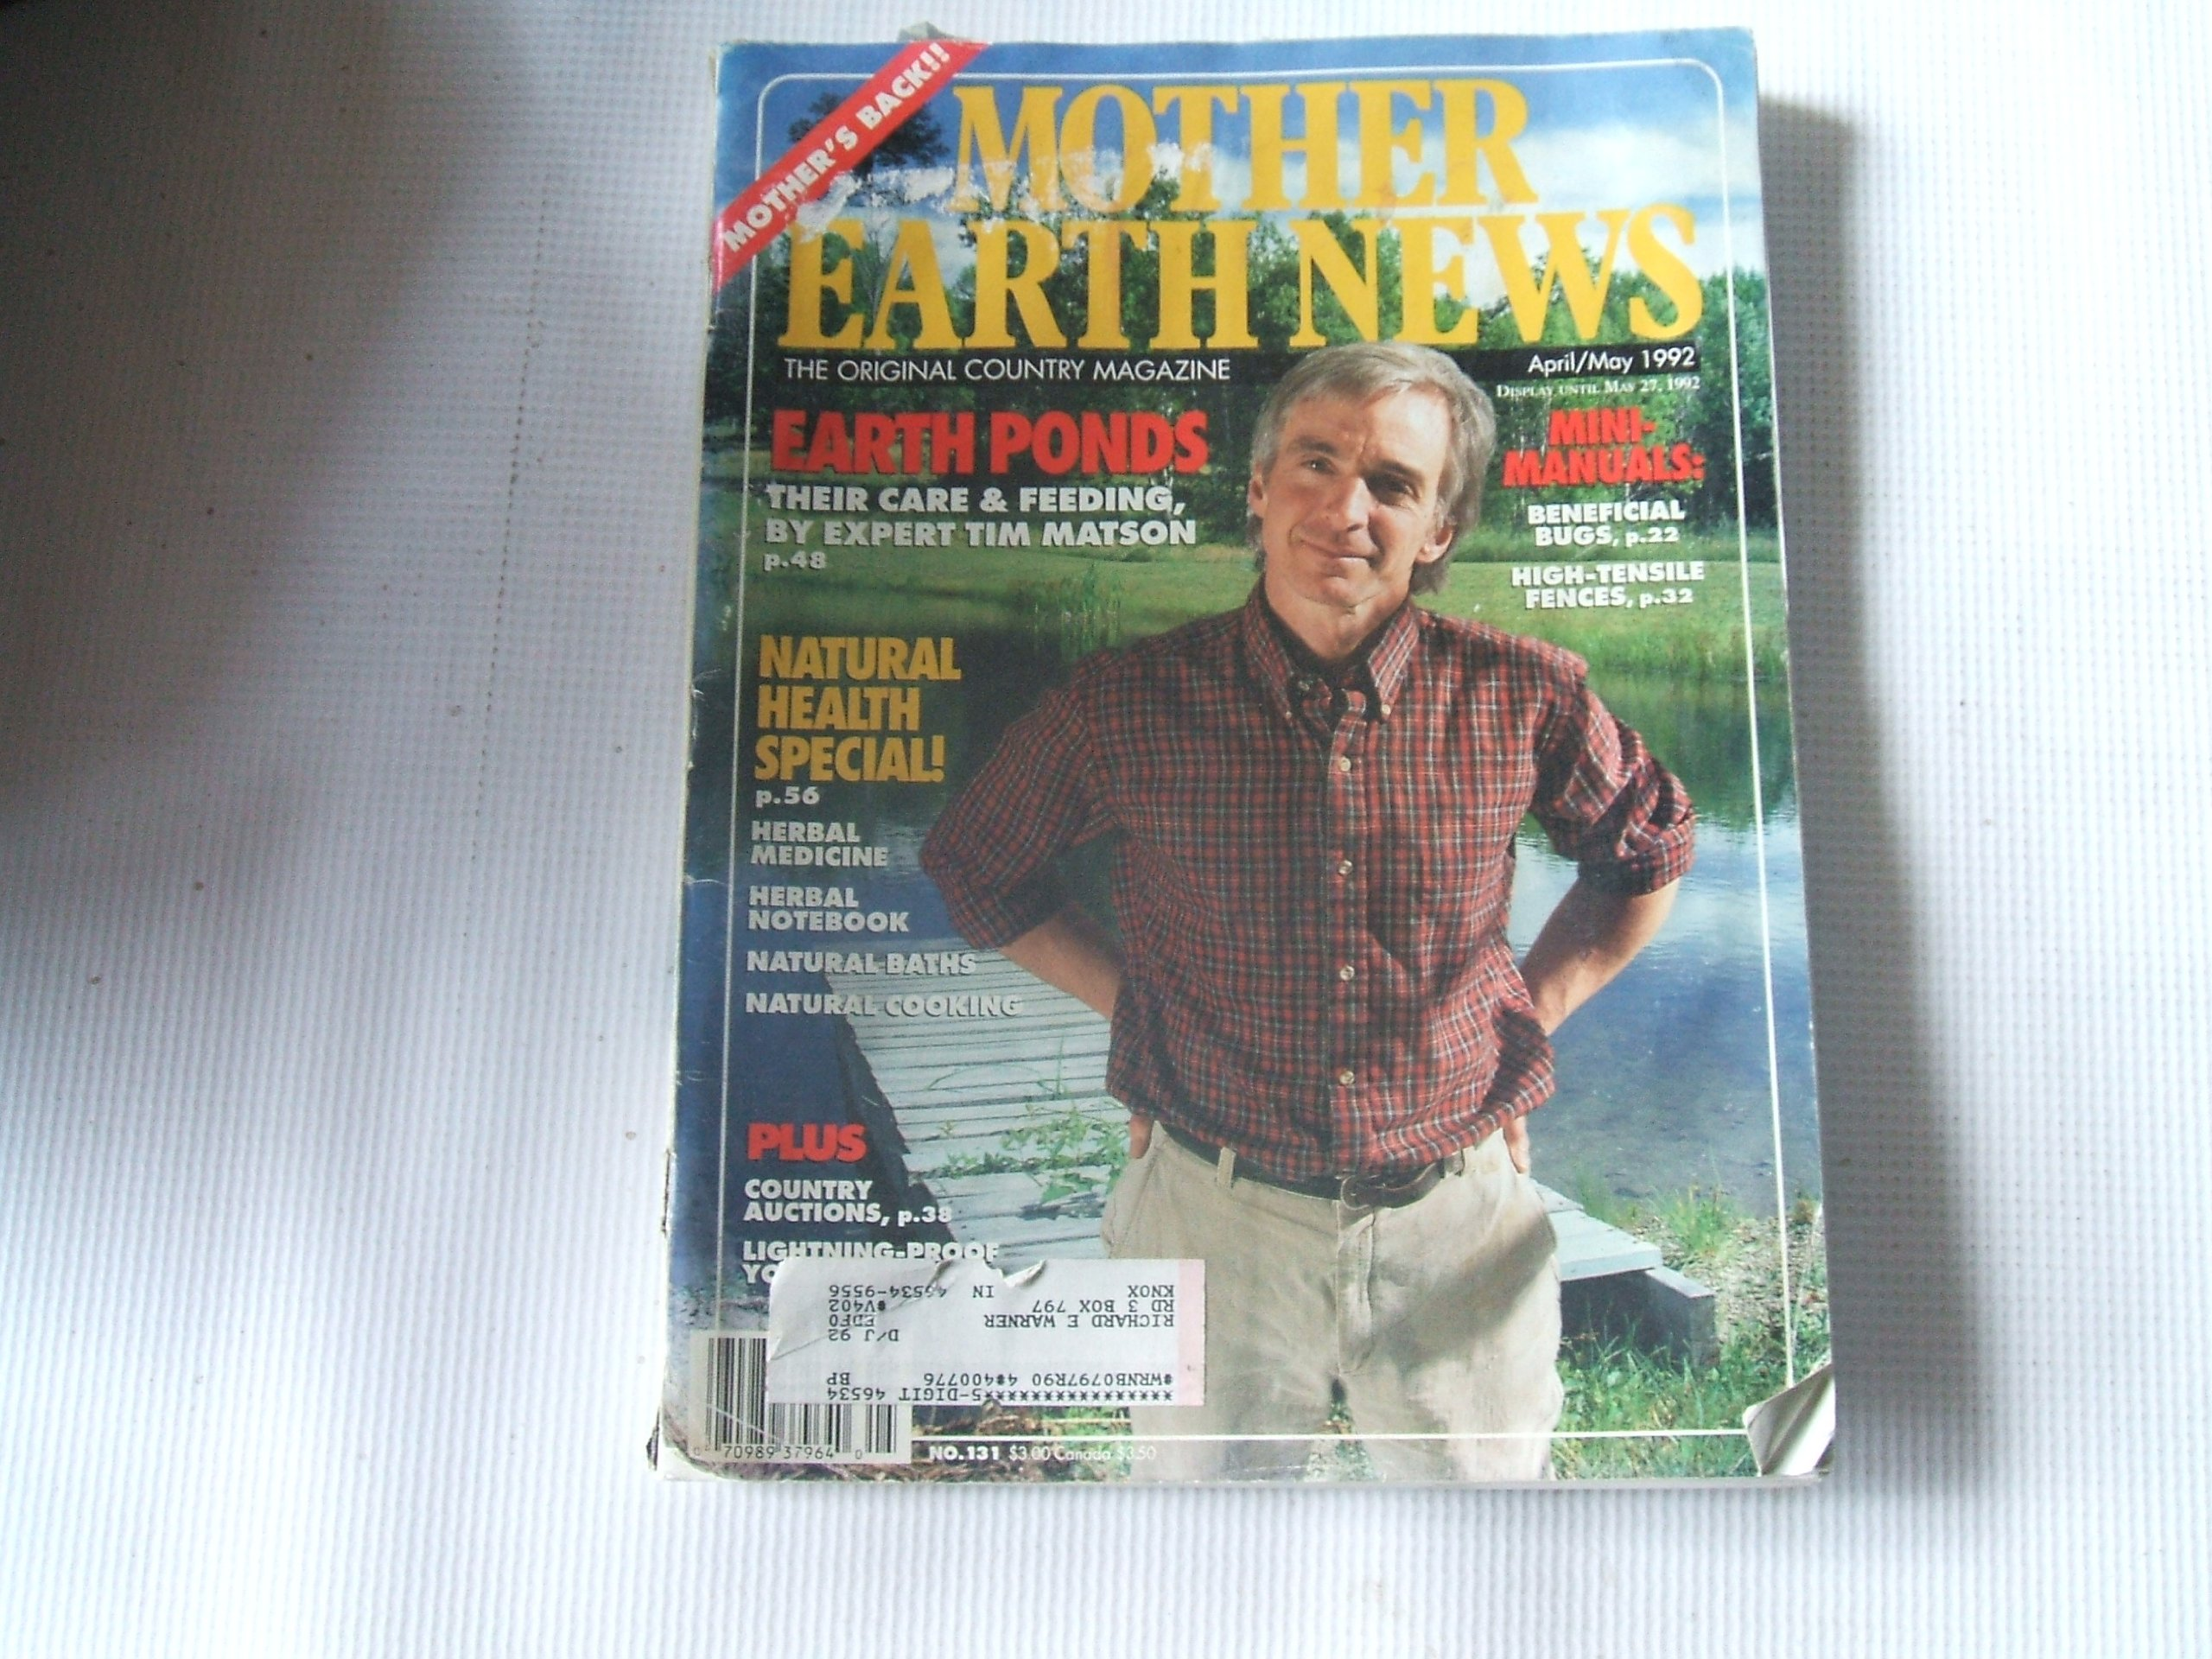 MOTHER EARTH NEW APRIL/MAY 1992 (THE ORIGINAL COUNTRY MAGAZINE- EARTH PONDS, THEIR CARE & FEEDING, BY EXPERT TIM MATSON, NO. 131) Paperback – 1992